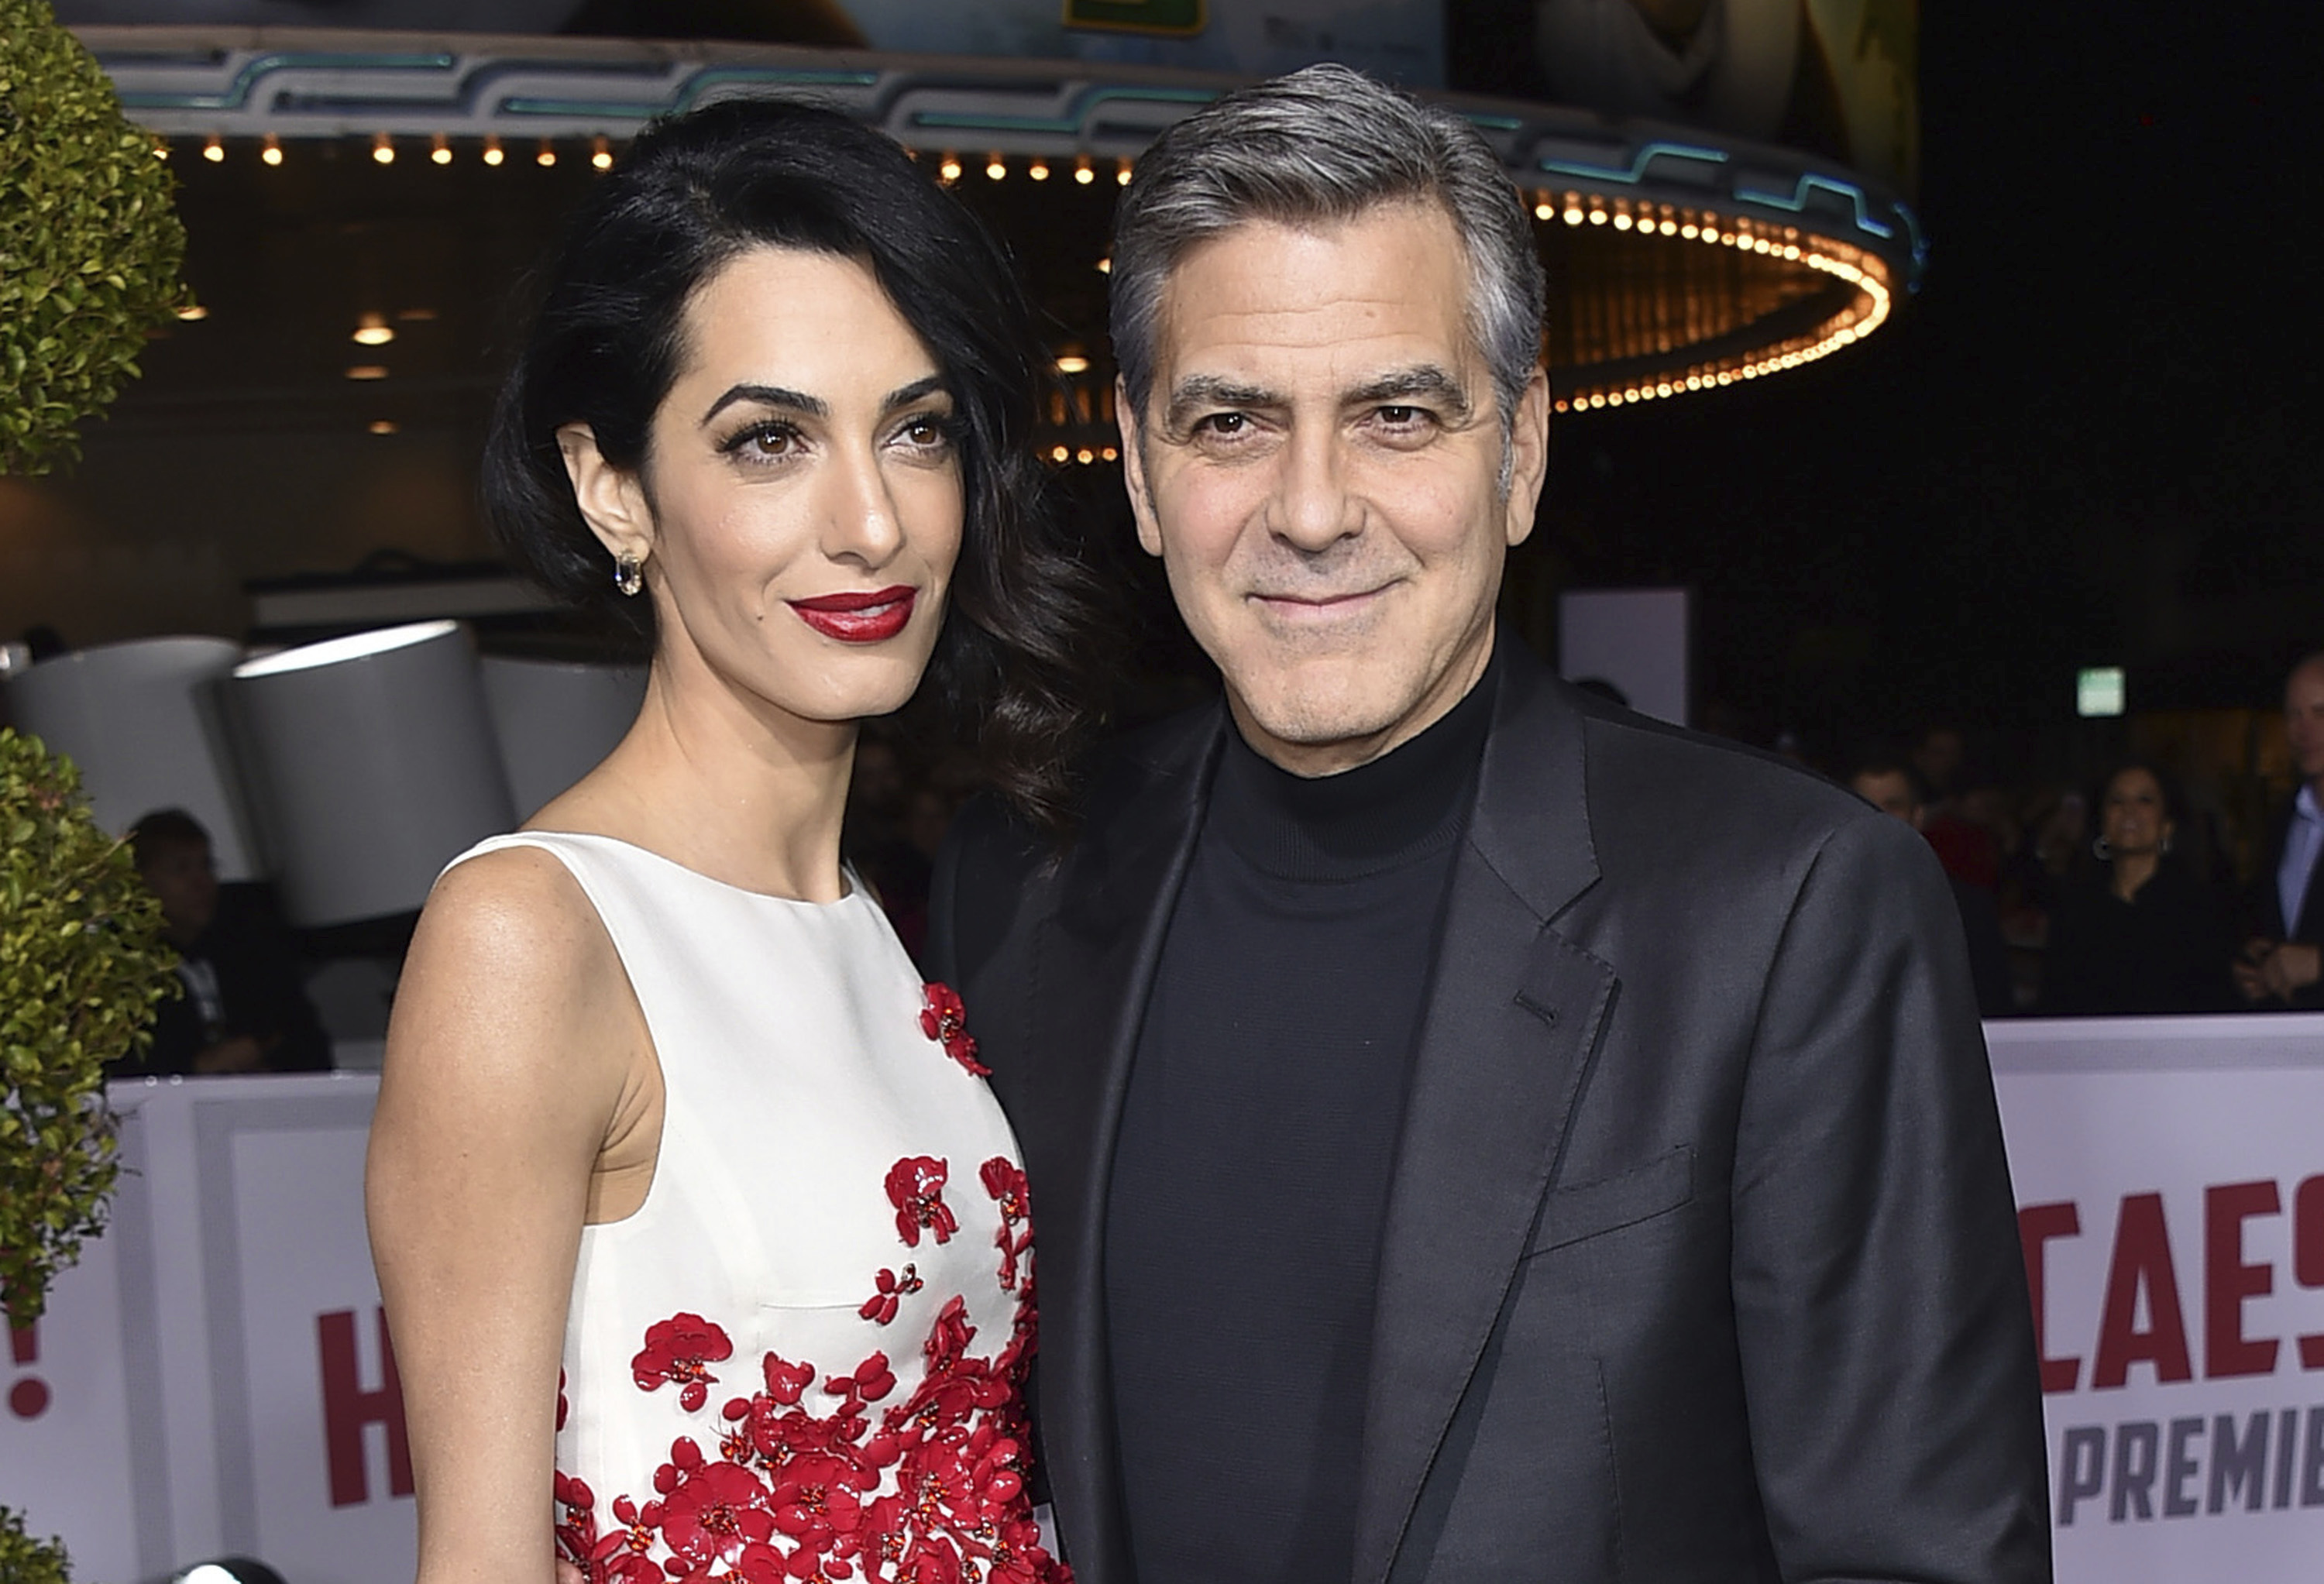 "FILE - In this Feb. 1, 2016 file photo, Amal Clooney, left, and George Clooney arrive at the world premiere of ""Hail, Caesar!"" in Los Angeles.  George and Amal Clooney have welcomed twins Ella and Alexander Clooney. The pair was born Tuesday morning, June 6, 2017, according to George Clooney's publicist Stan Rosenfield.  (Photo by Jordan Strauss/Invision/AP, File)"